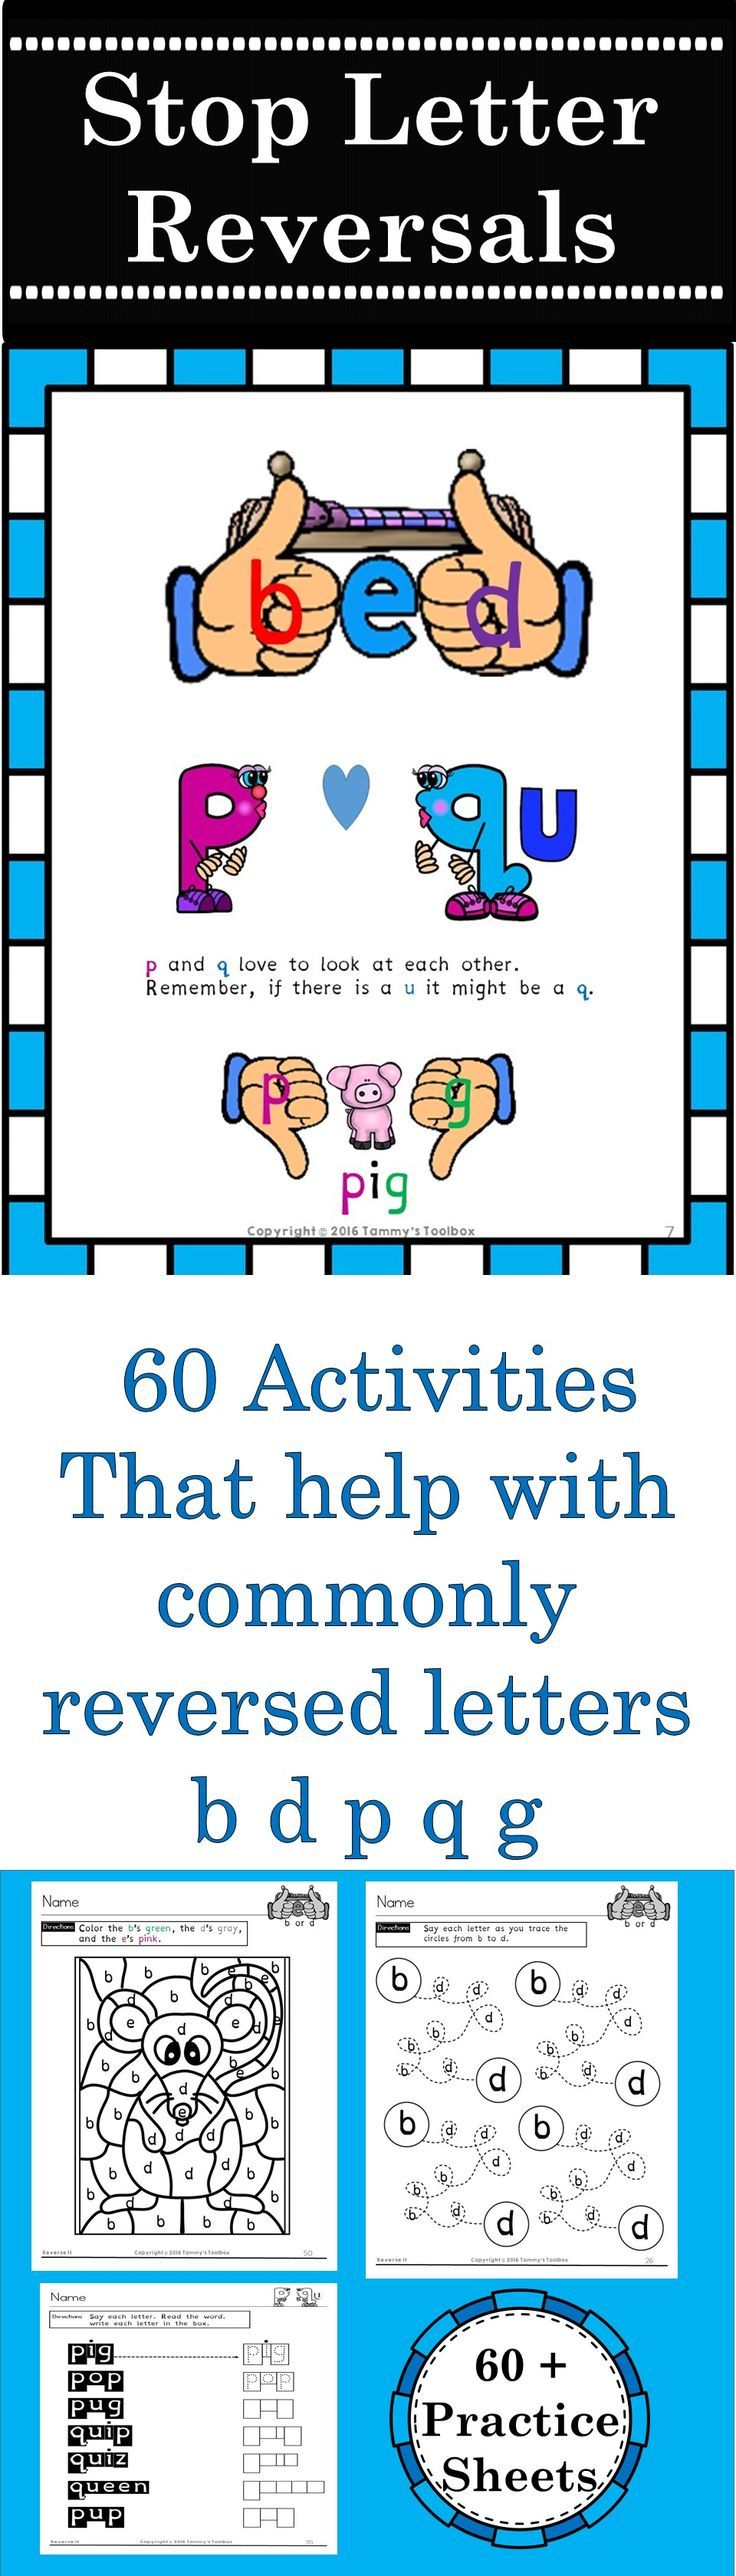 Reverse It - Over 60 printable activities to help students with dyslexia overcome letter reversals and confusion between the letters b, d, p, q and g.  Great for early readers, special education, homeschool, reading centers, and phonics tutoring. Multi-sensory, interactive activities.  See more at Tammy's Toolbox - www.teacherspayteachers.com/store/tammystoolbox-4544